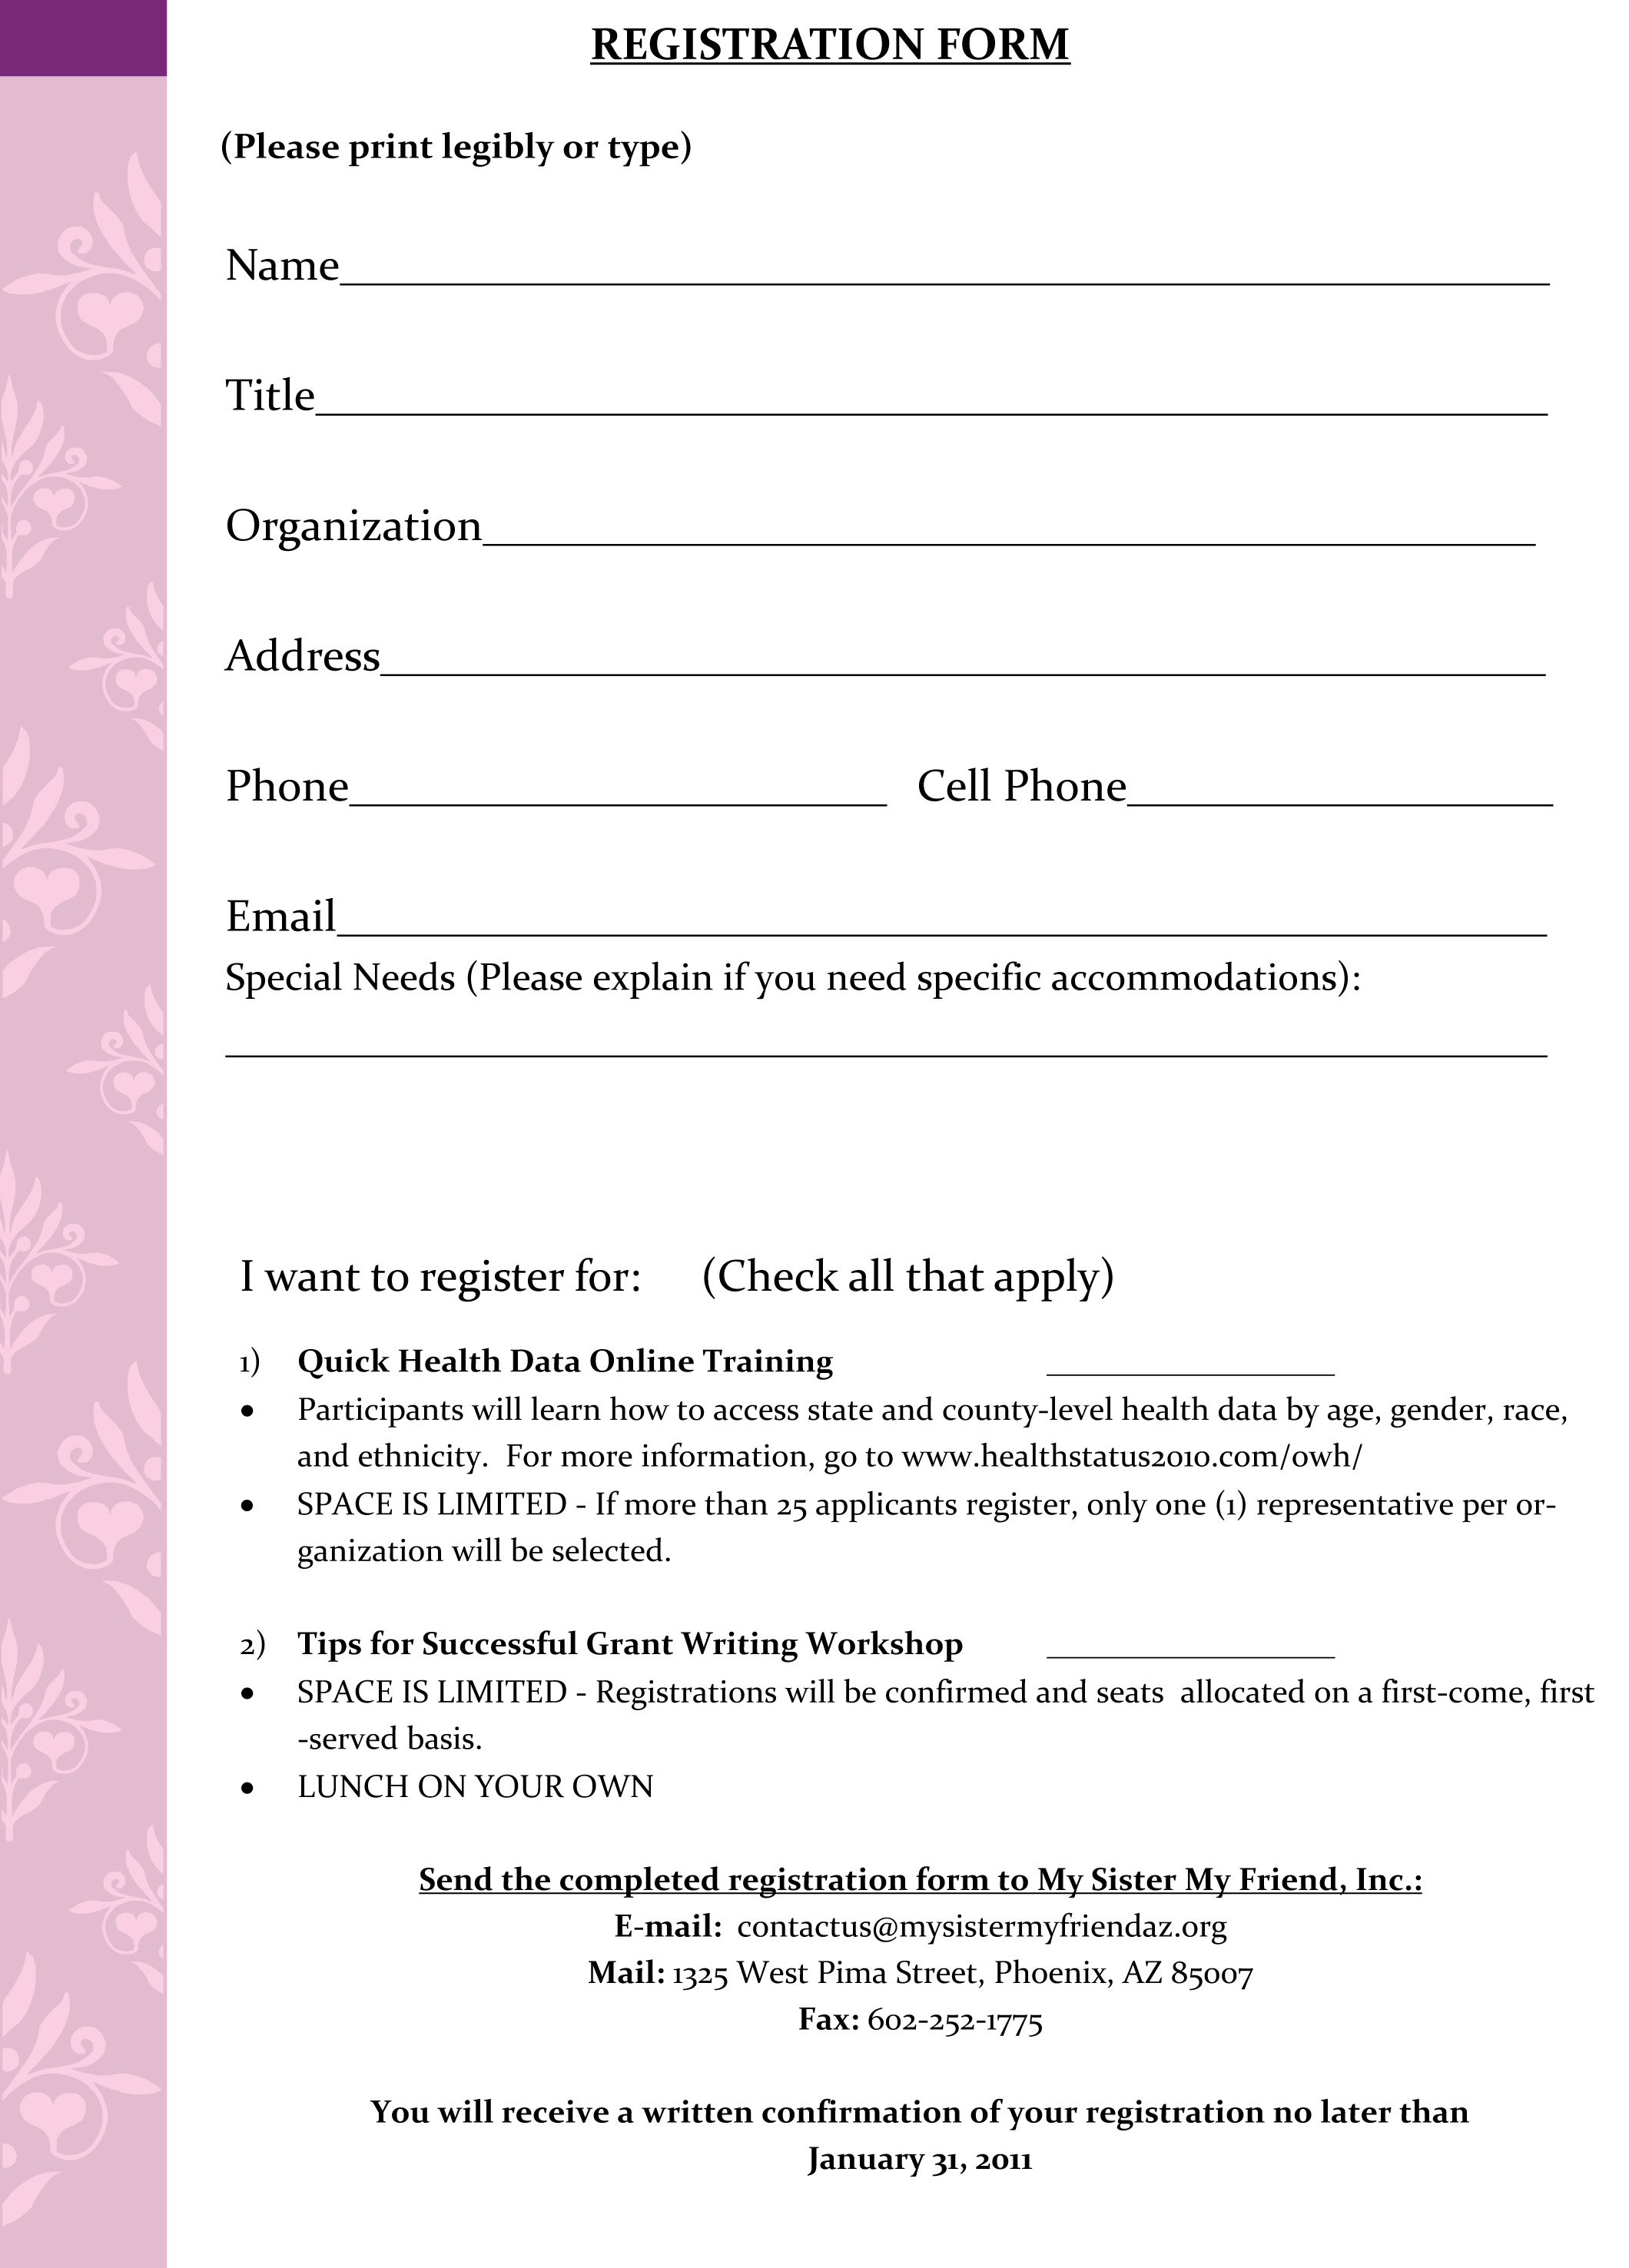 Registration Form Template Microsoft - Template Examples